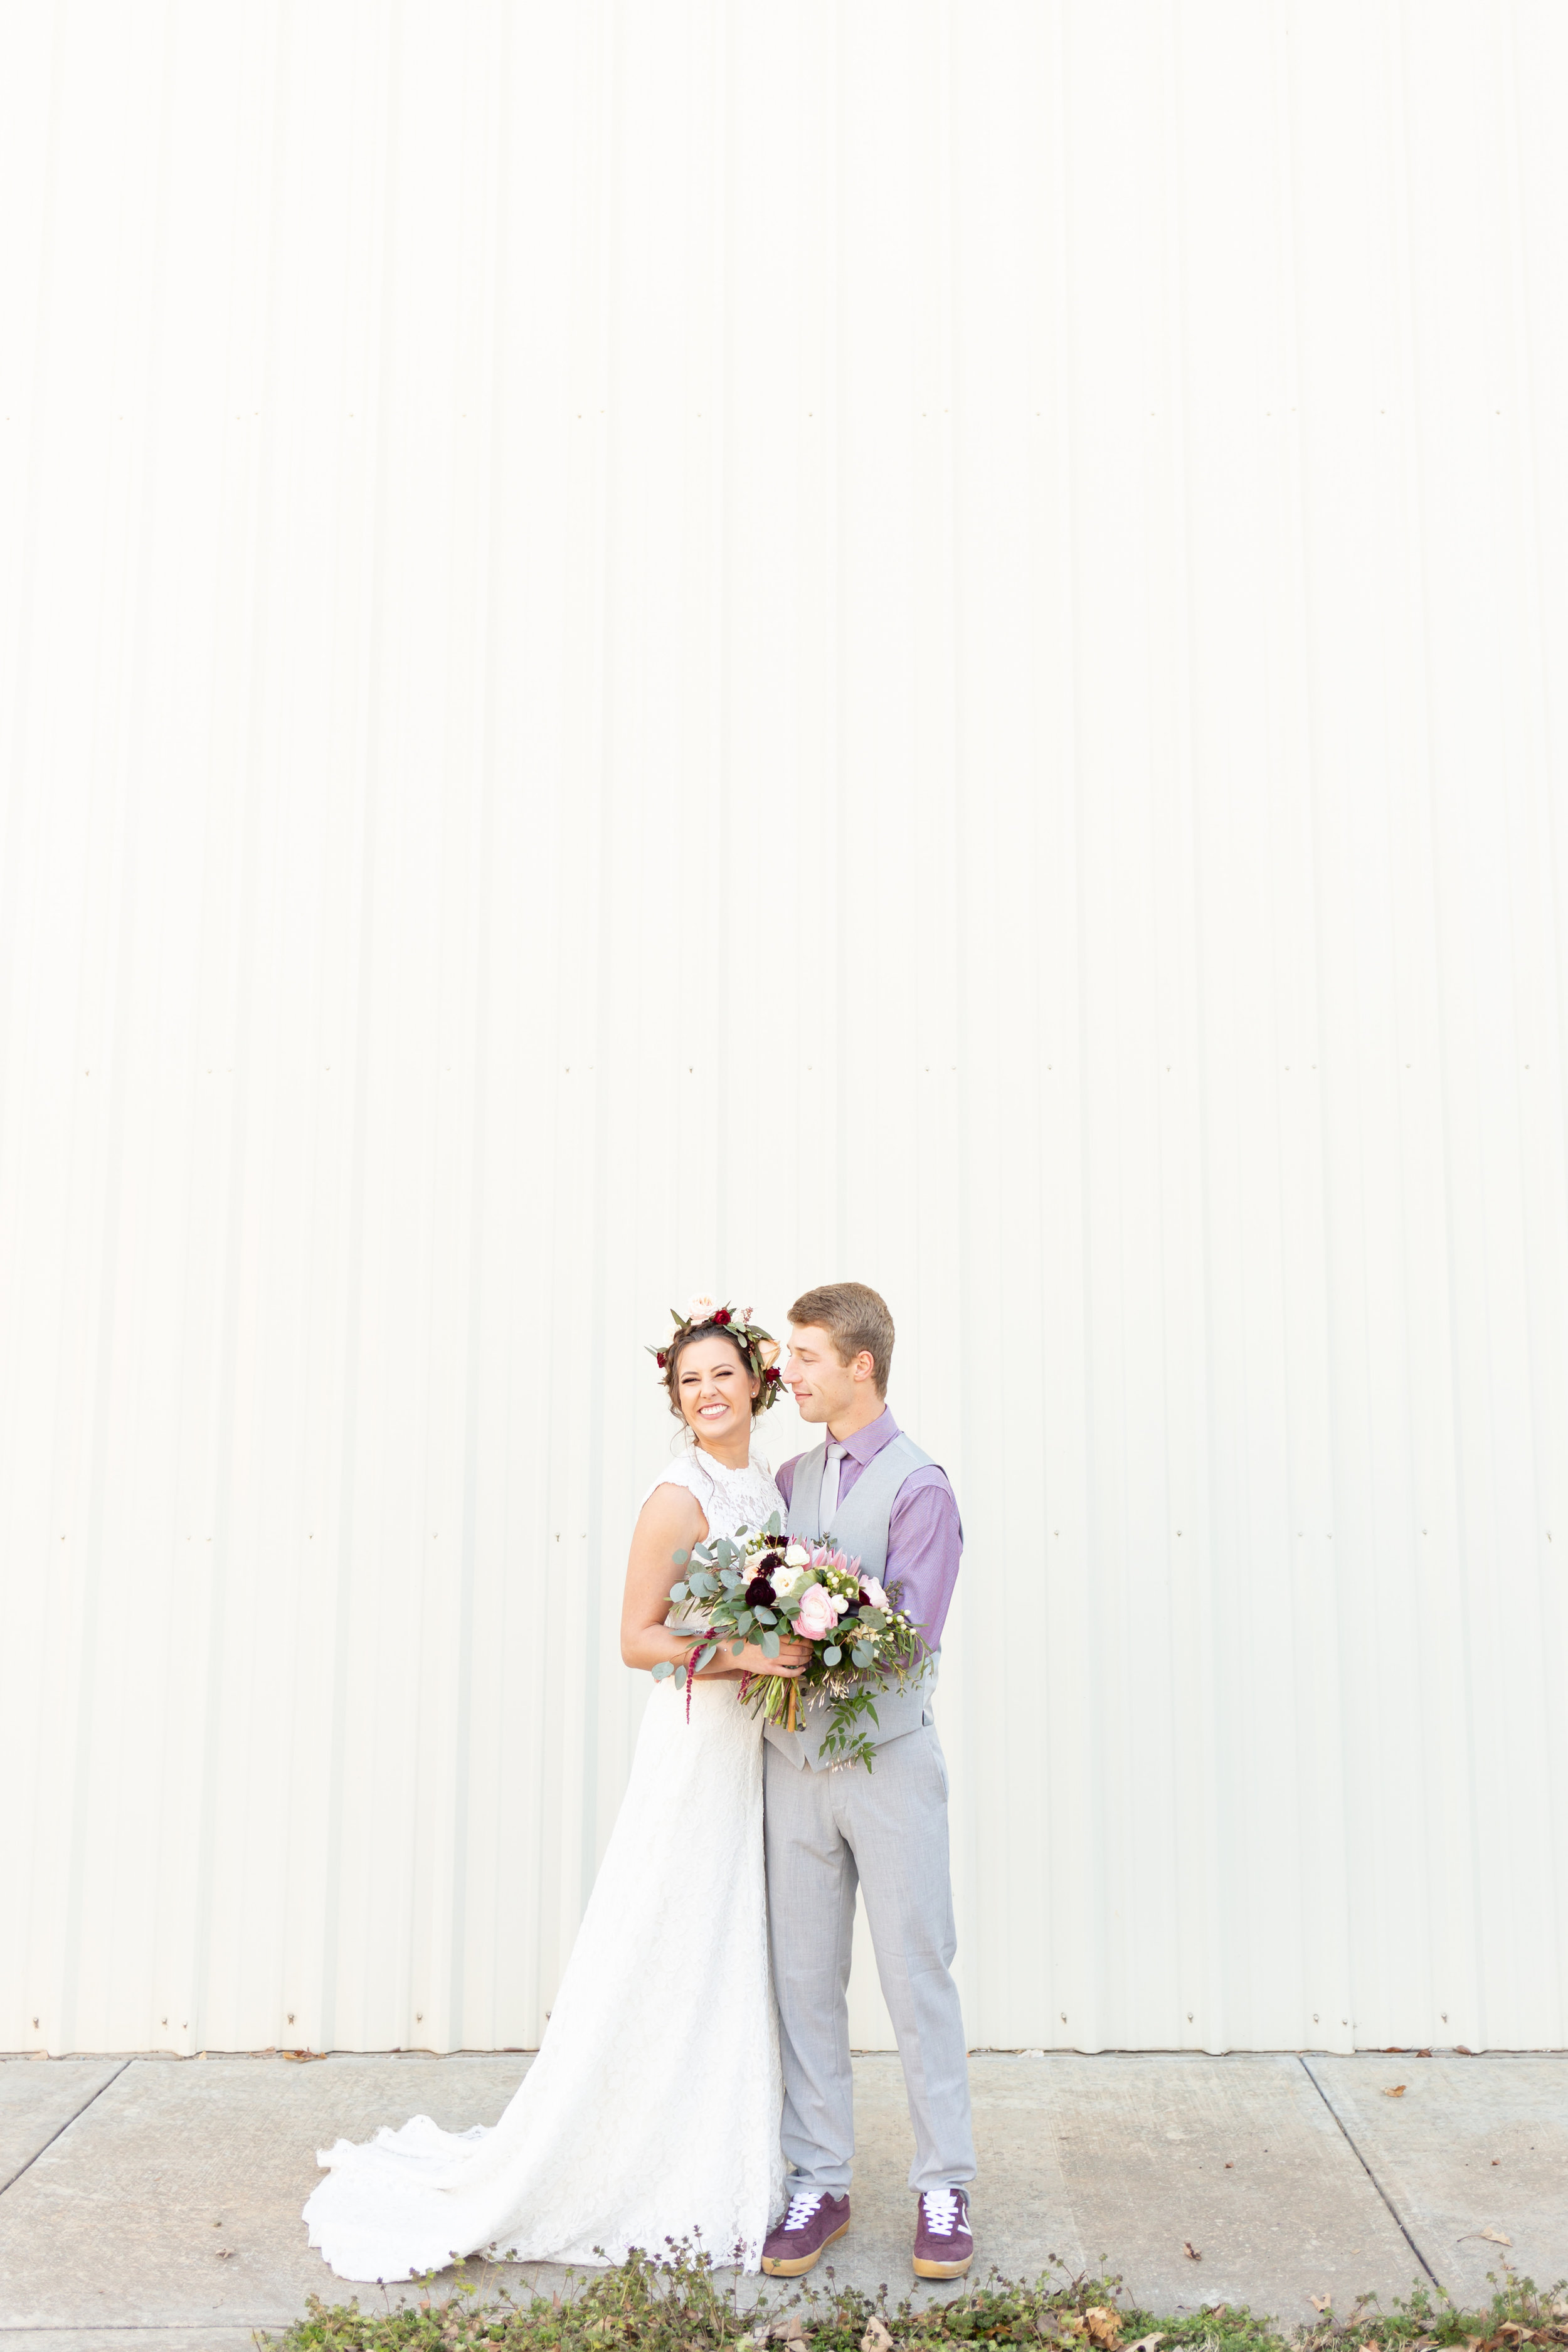 Jacob+Caitlin-136.jpg